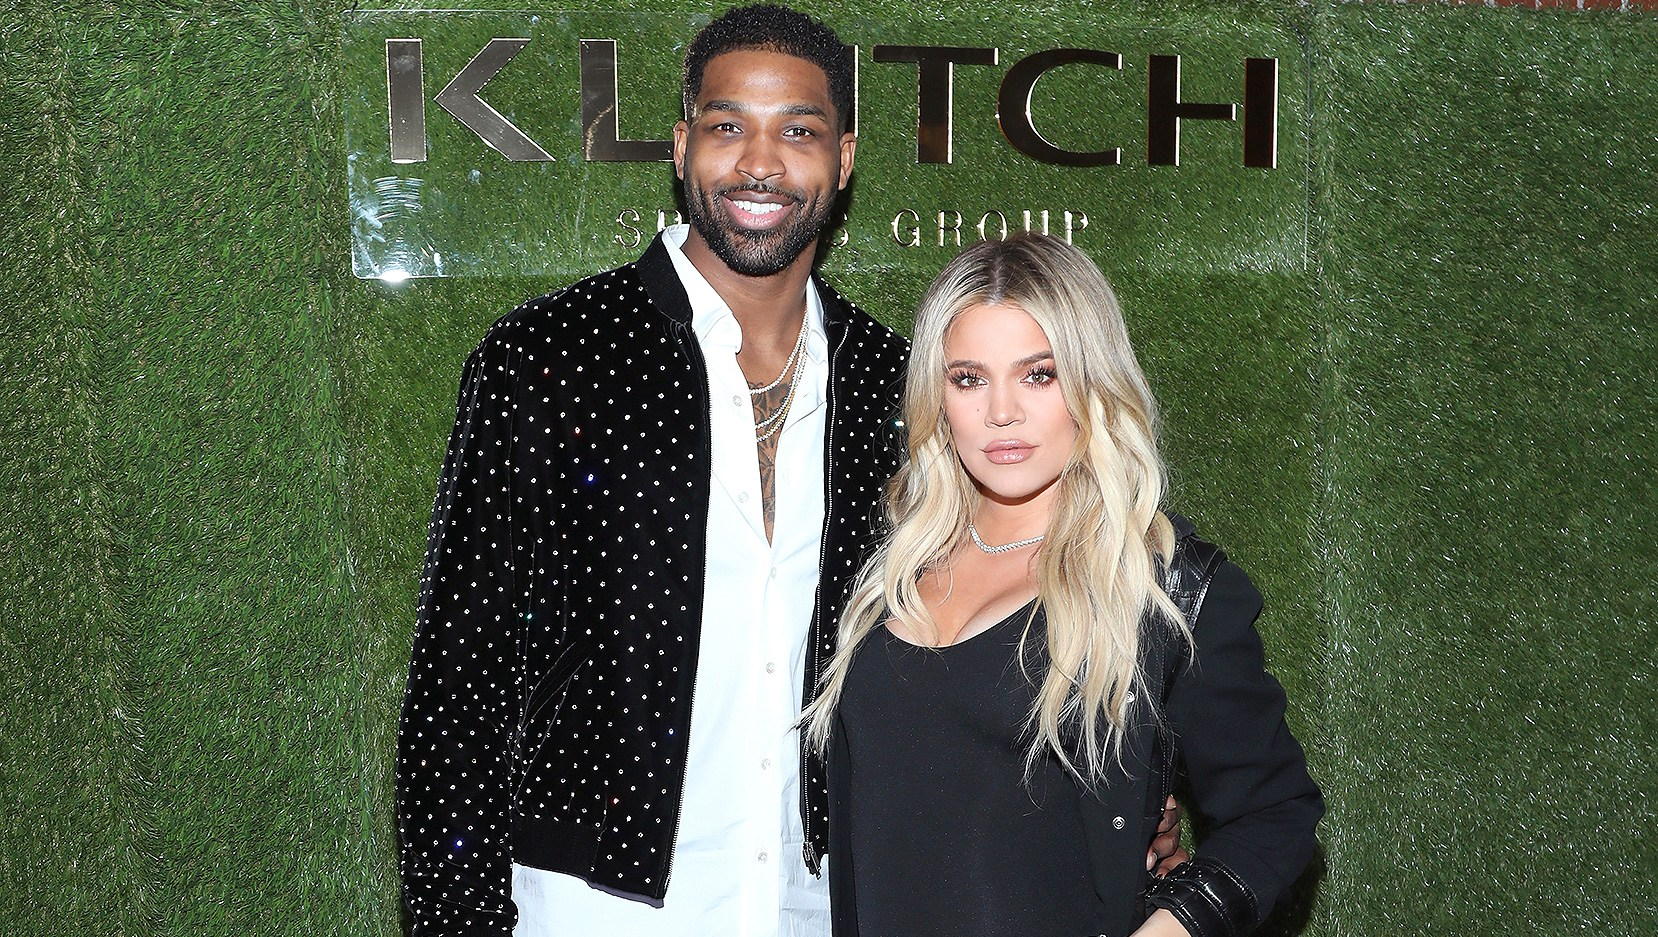 Khloe Kardashian, Tristan Thompson, Cheating Scandal, Instagram, Fans